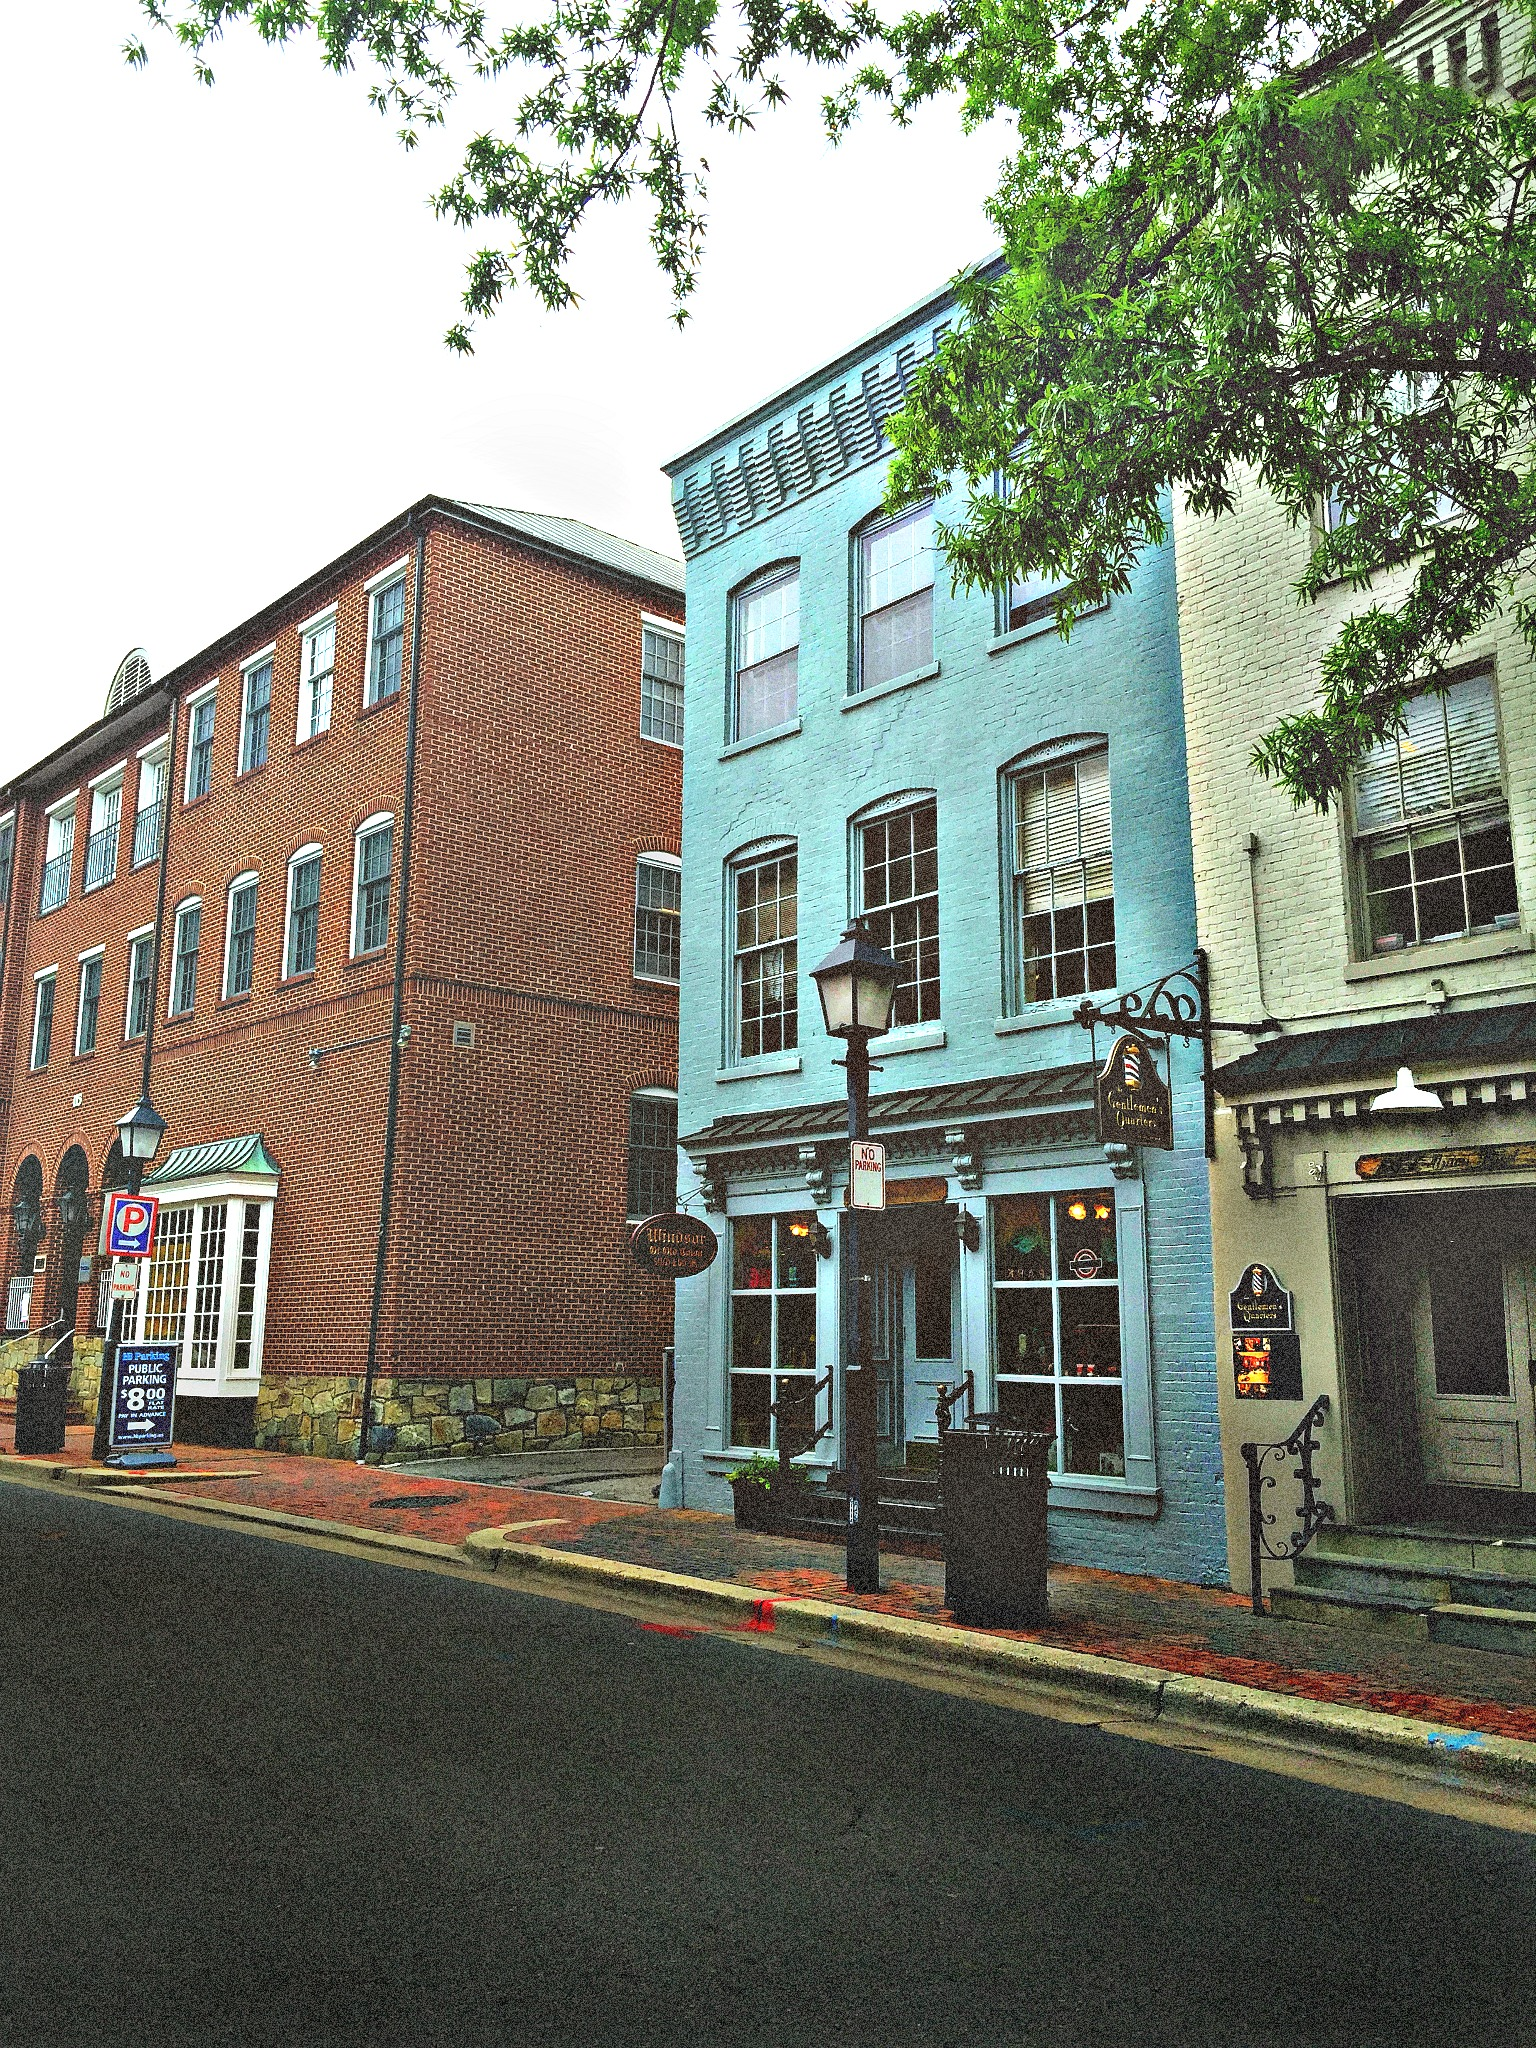 Old Town Alexandria Washington D.C. Virtue Feed & Grain